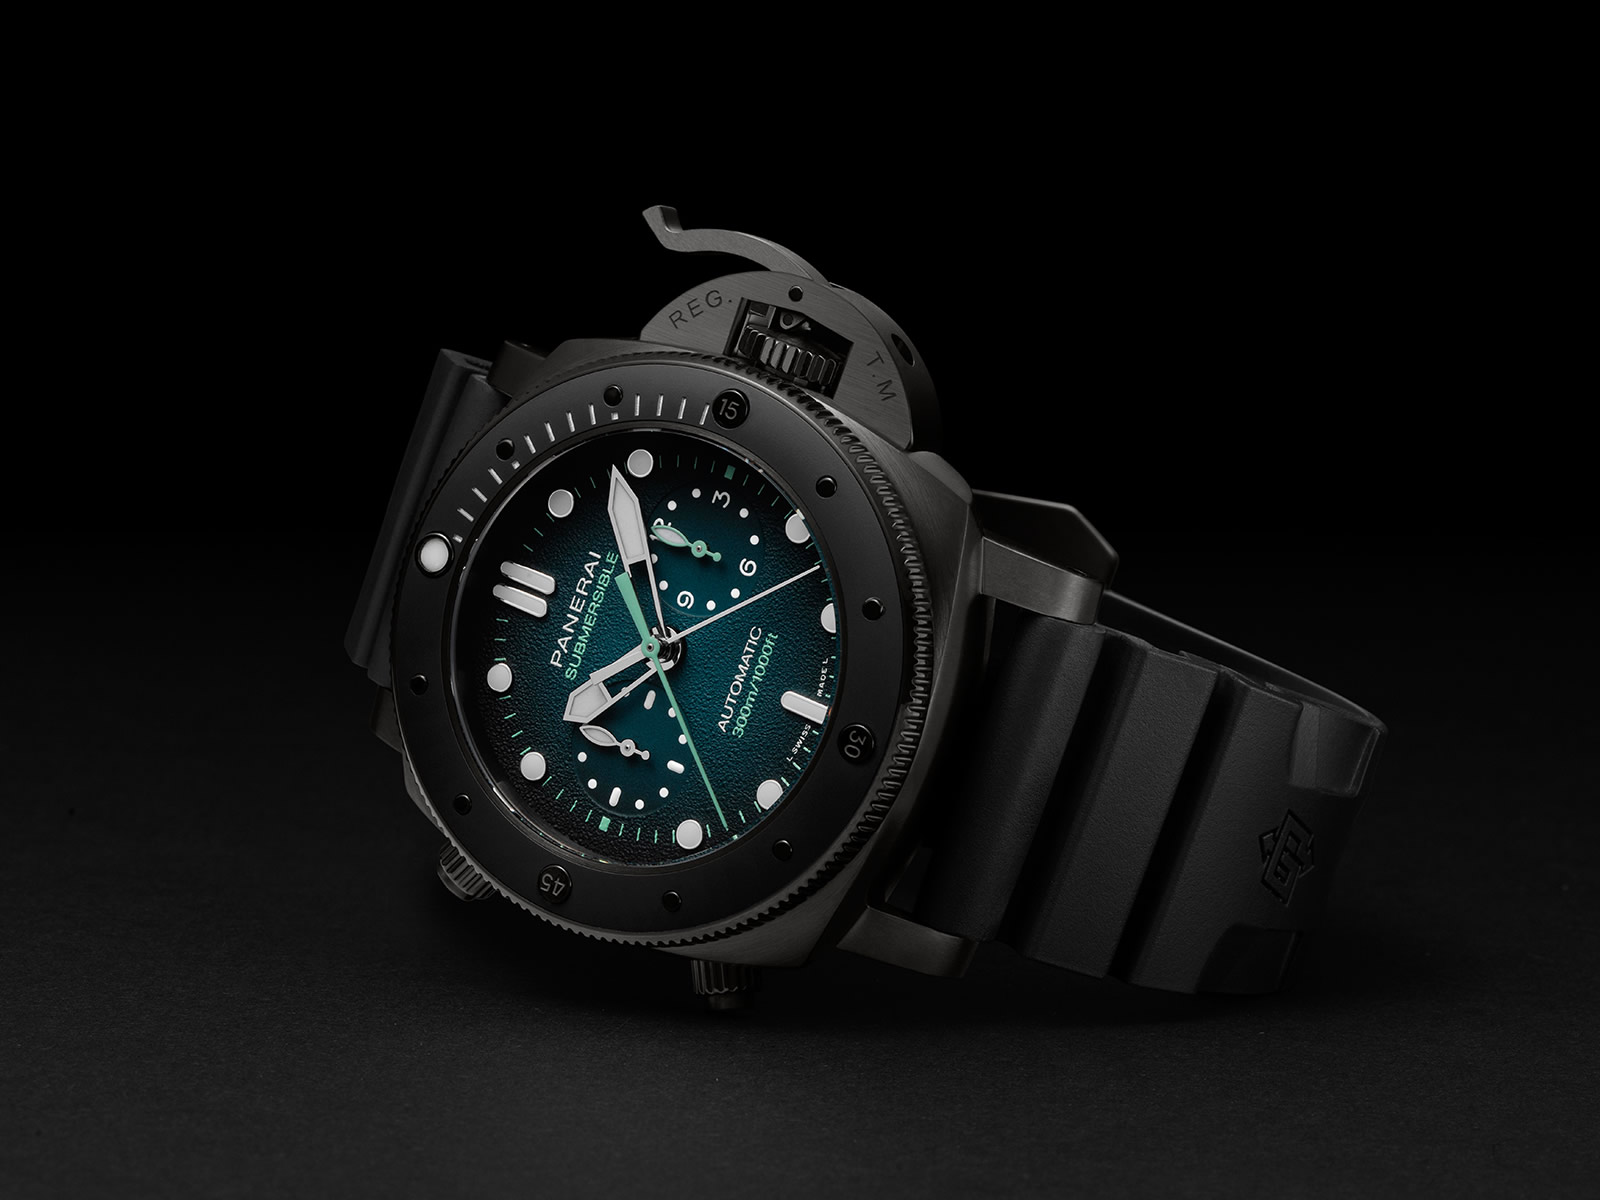 pam00983-officine-panerai-submersible-chrono-guillaume-nery-edition-blue-and-black-dial-1-.jpg